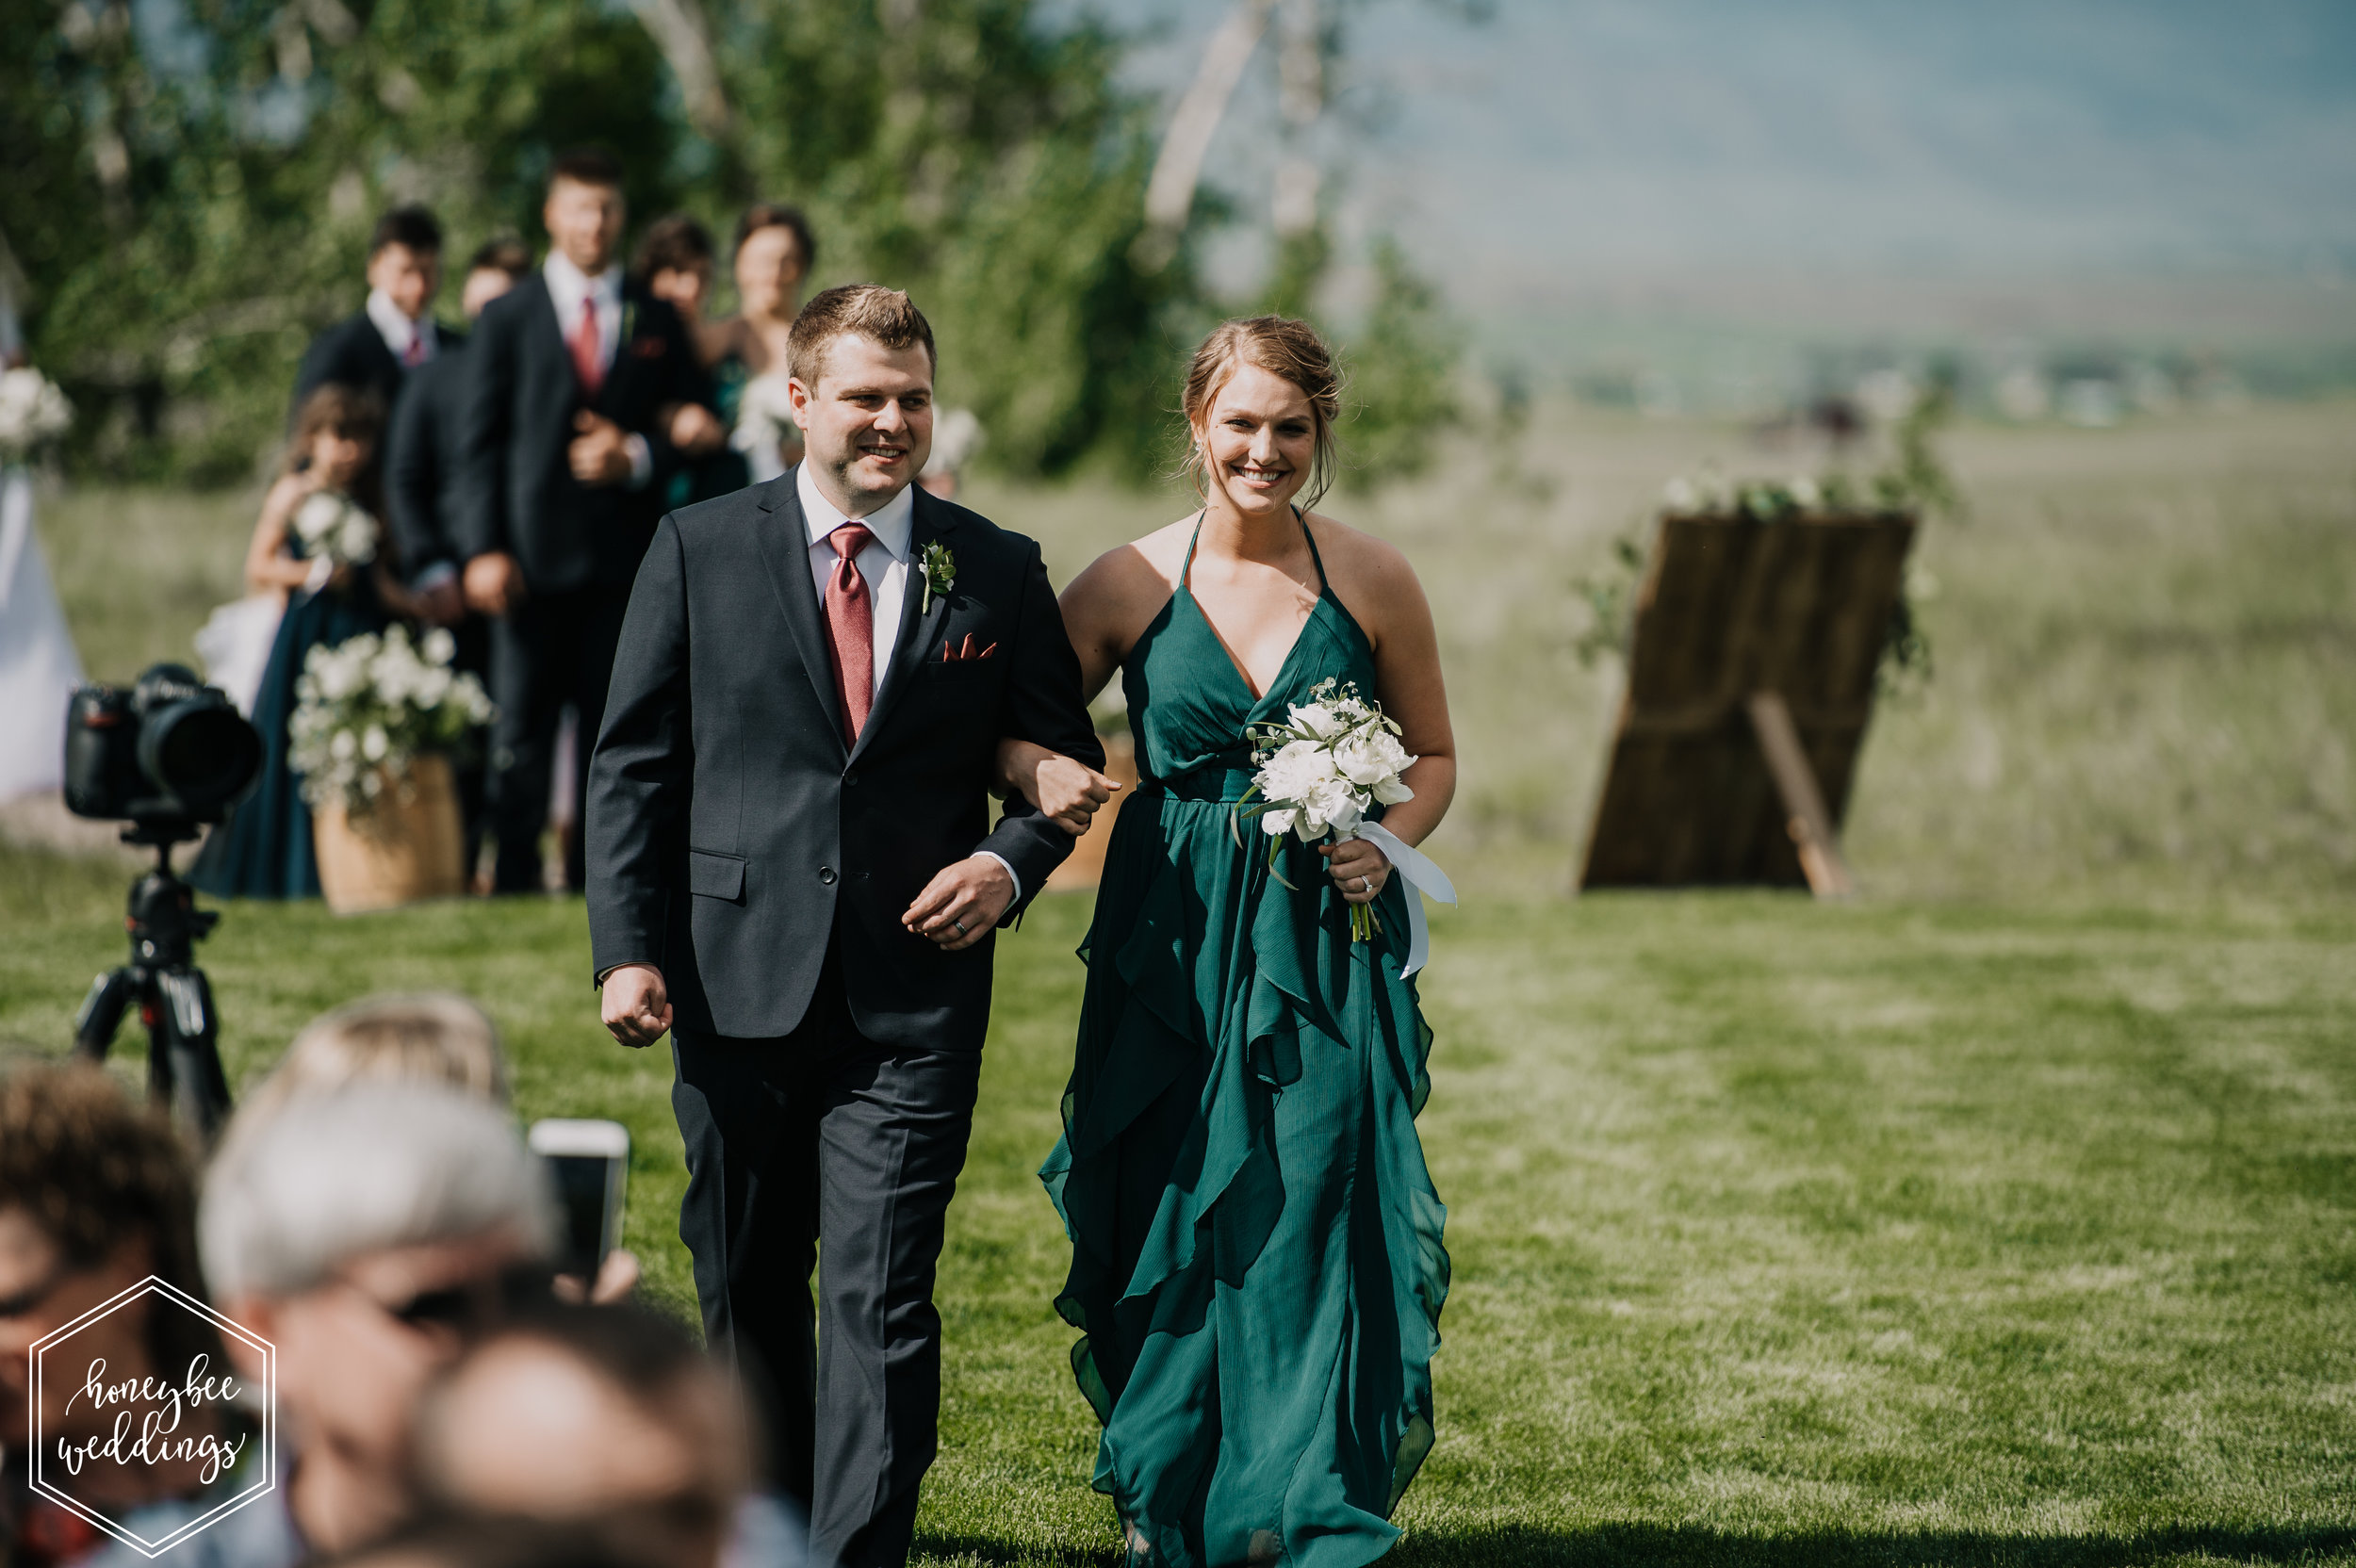 138 Chico Hotsprings Wedding_Bowdino 2018-3356-2.jpg